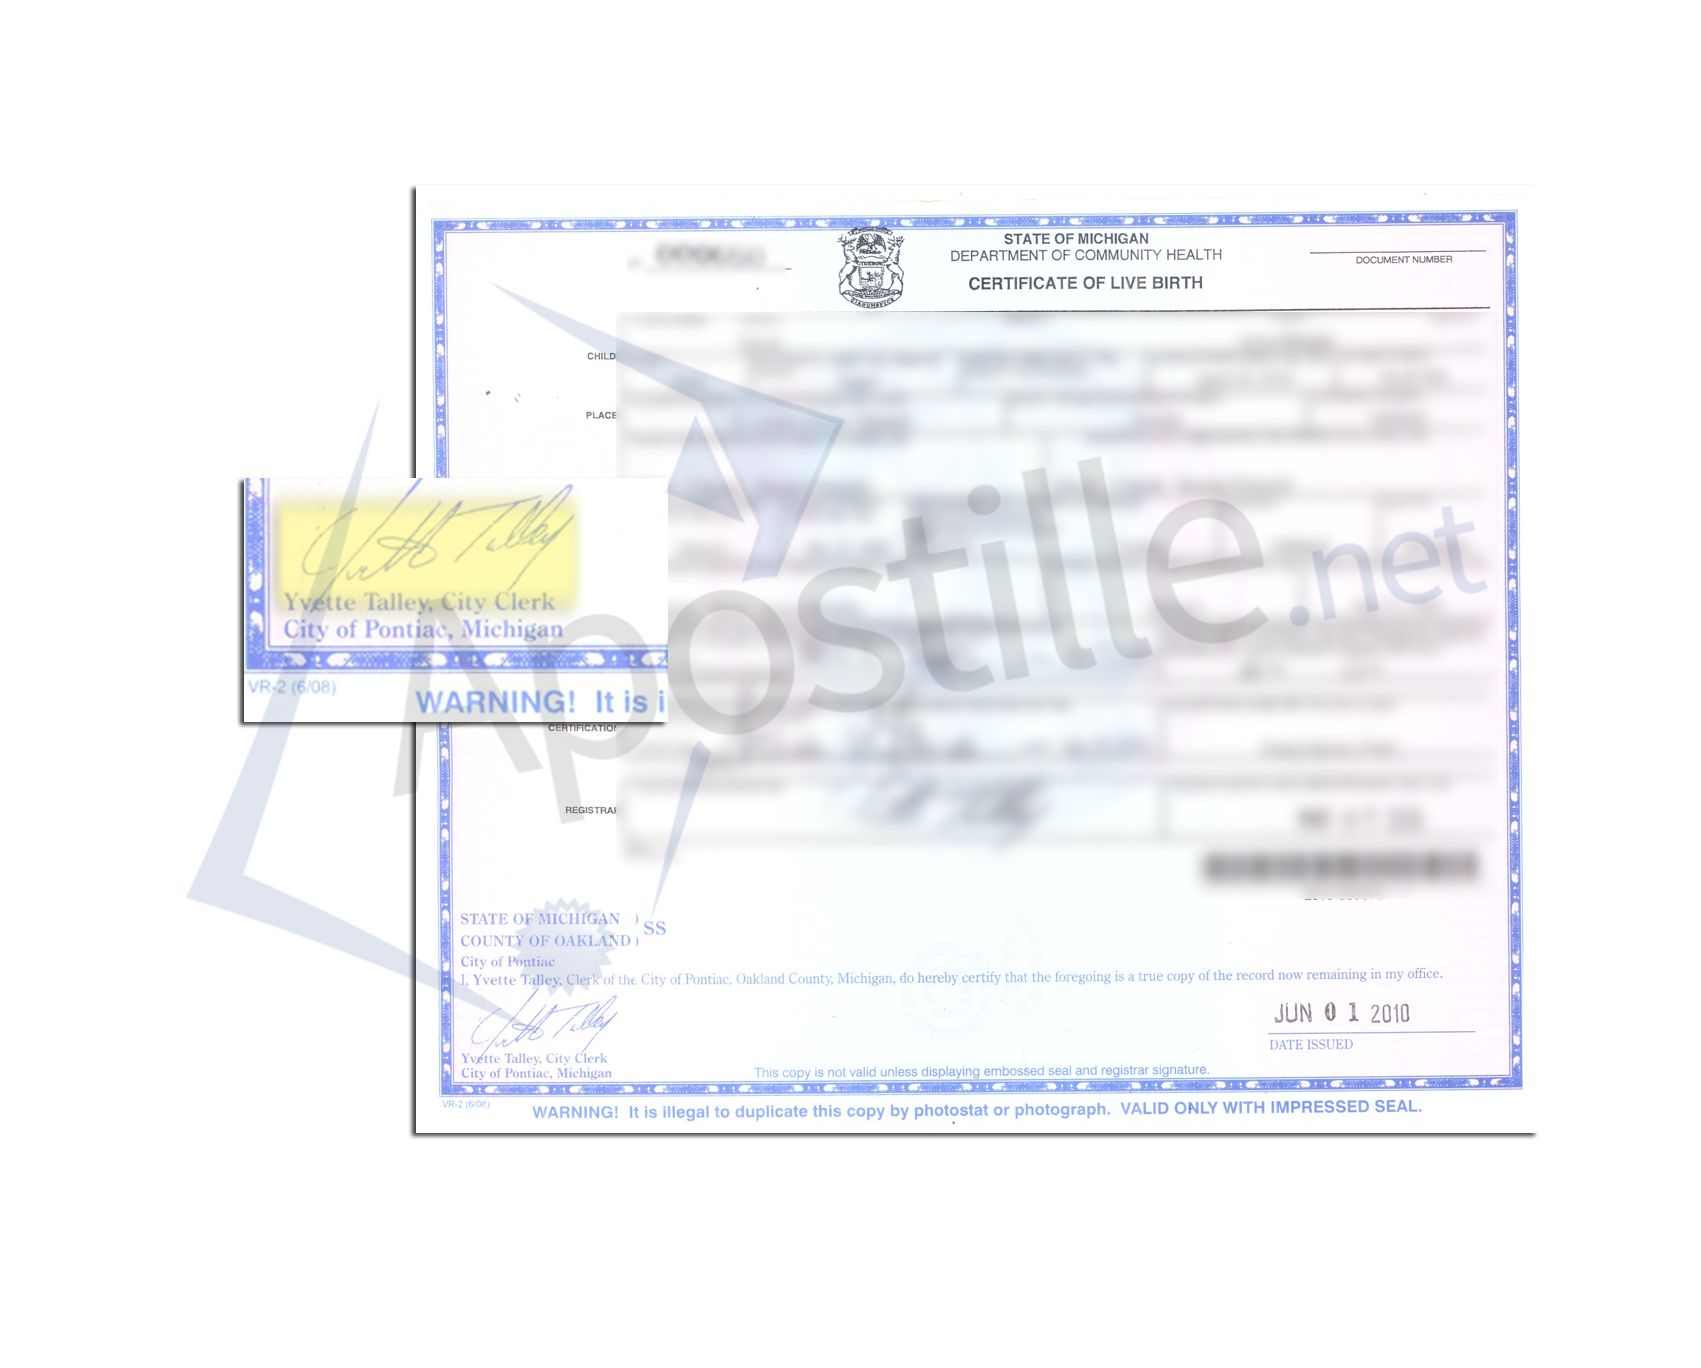 Oakland County State Of Michigan Birth Certificate Signed By Yvette